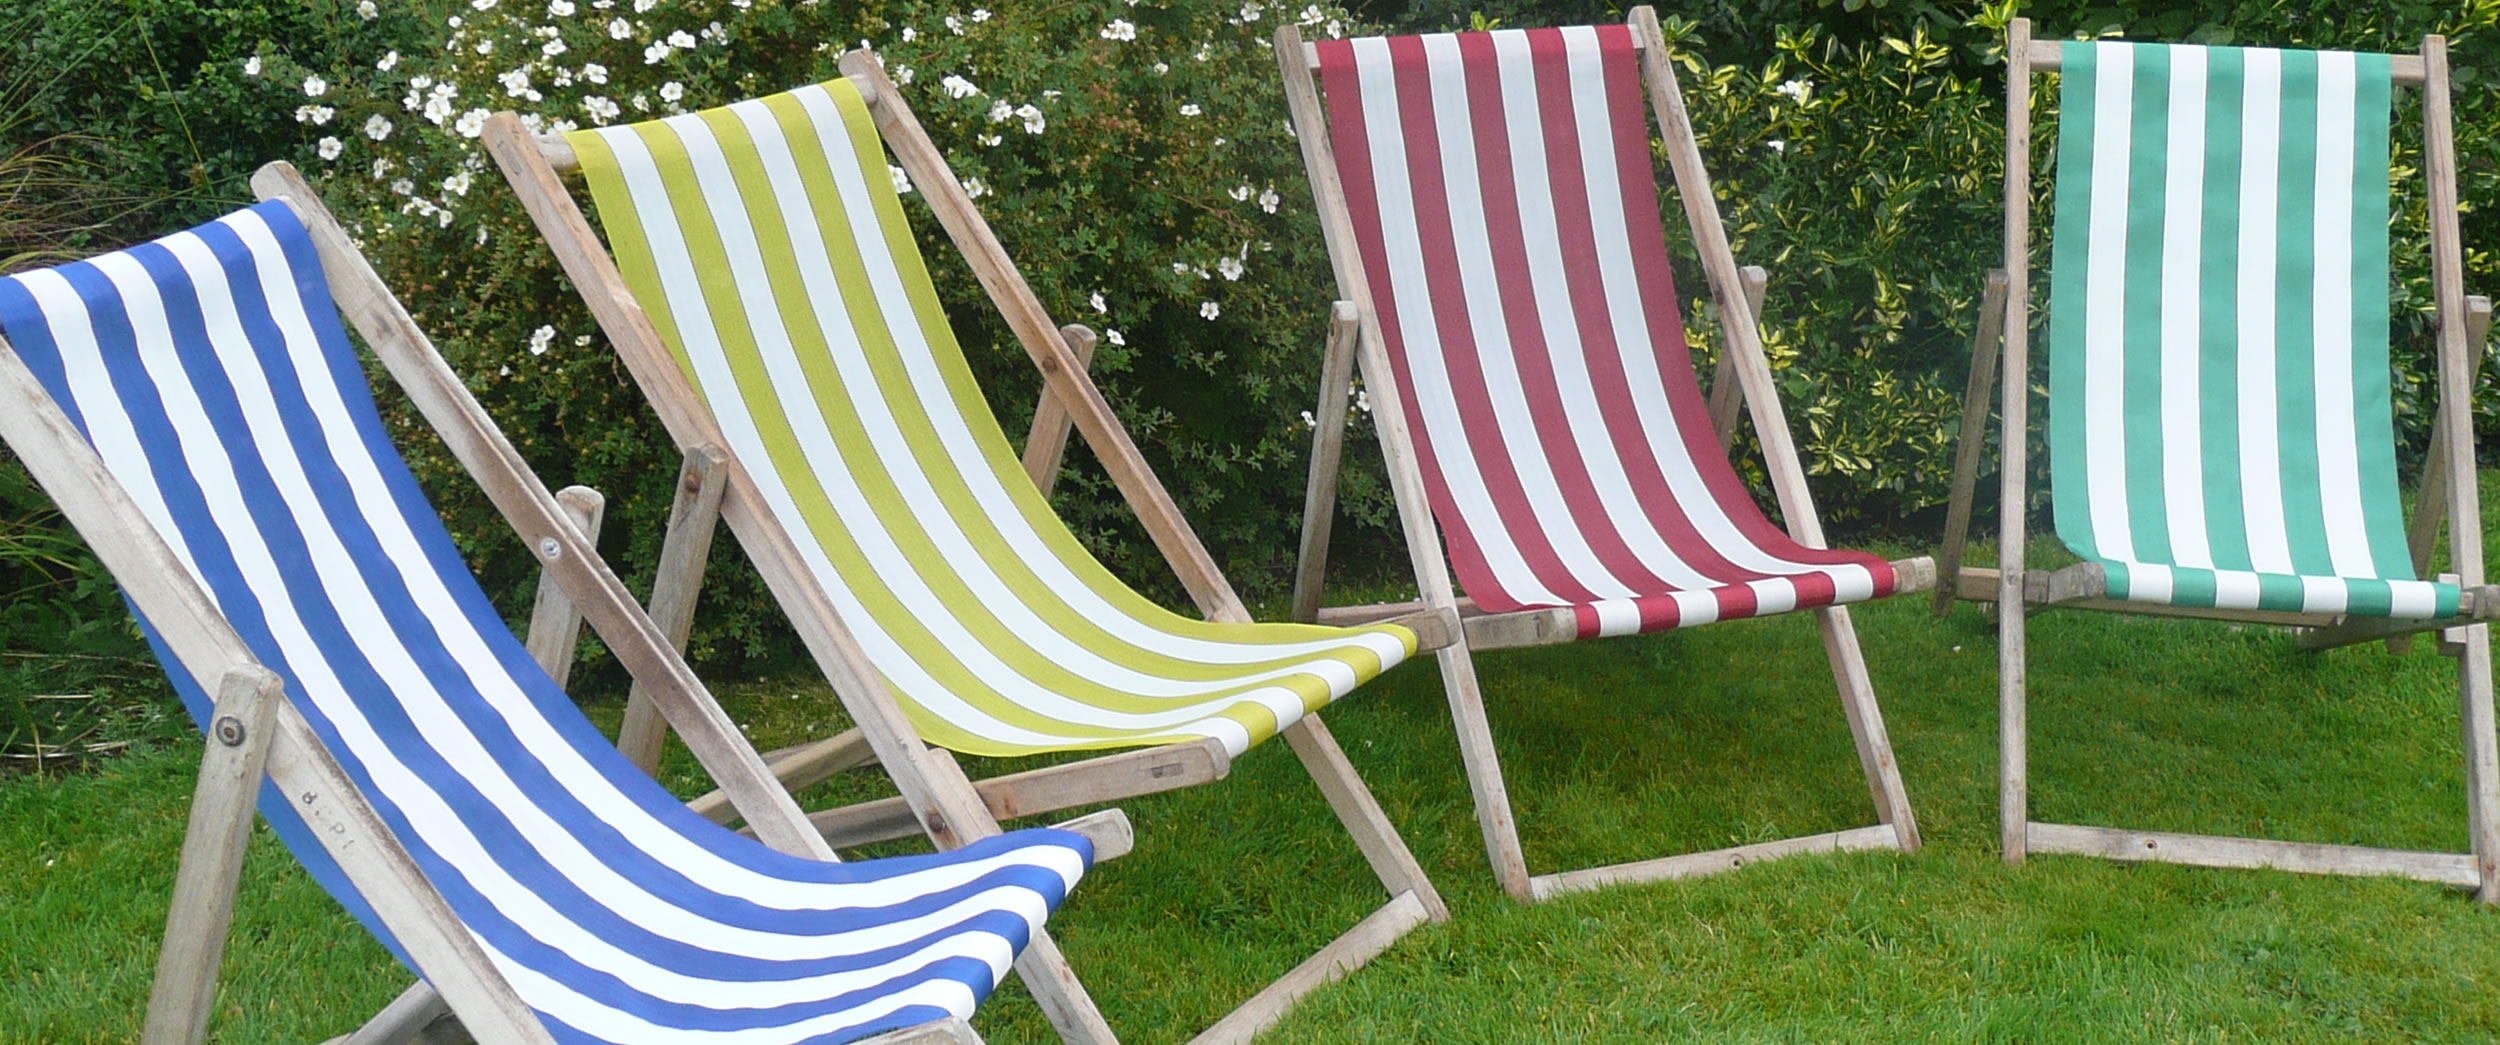 deckchair hire & Deckchair Hire - The Stripes Company UK | The Stripes Company Blog